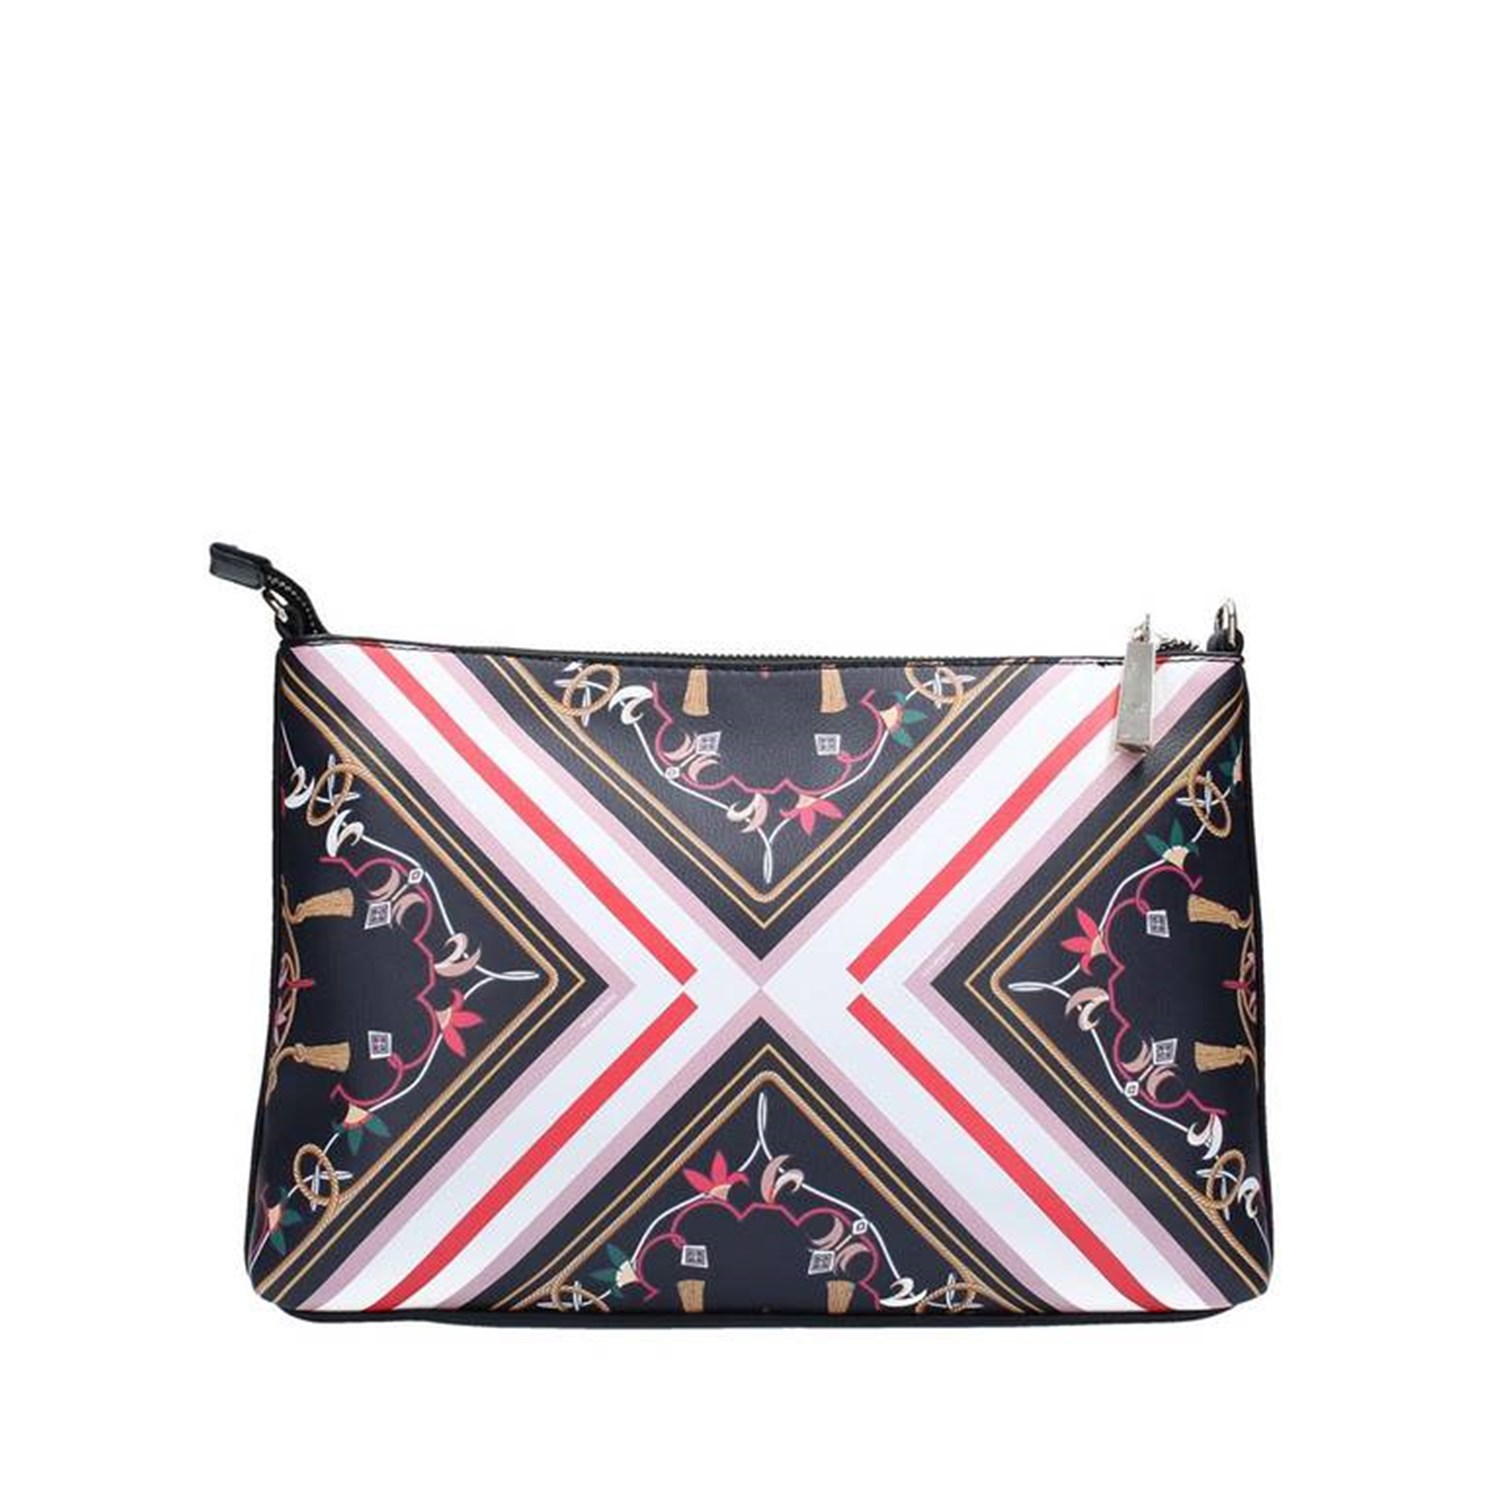 Rocco Barocco Bags Accessories Clutch BLACK BS0W003